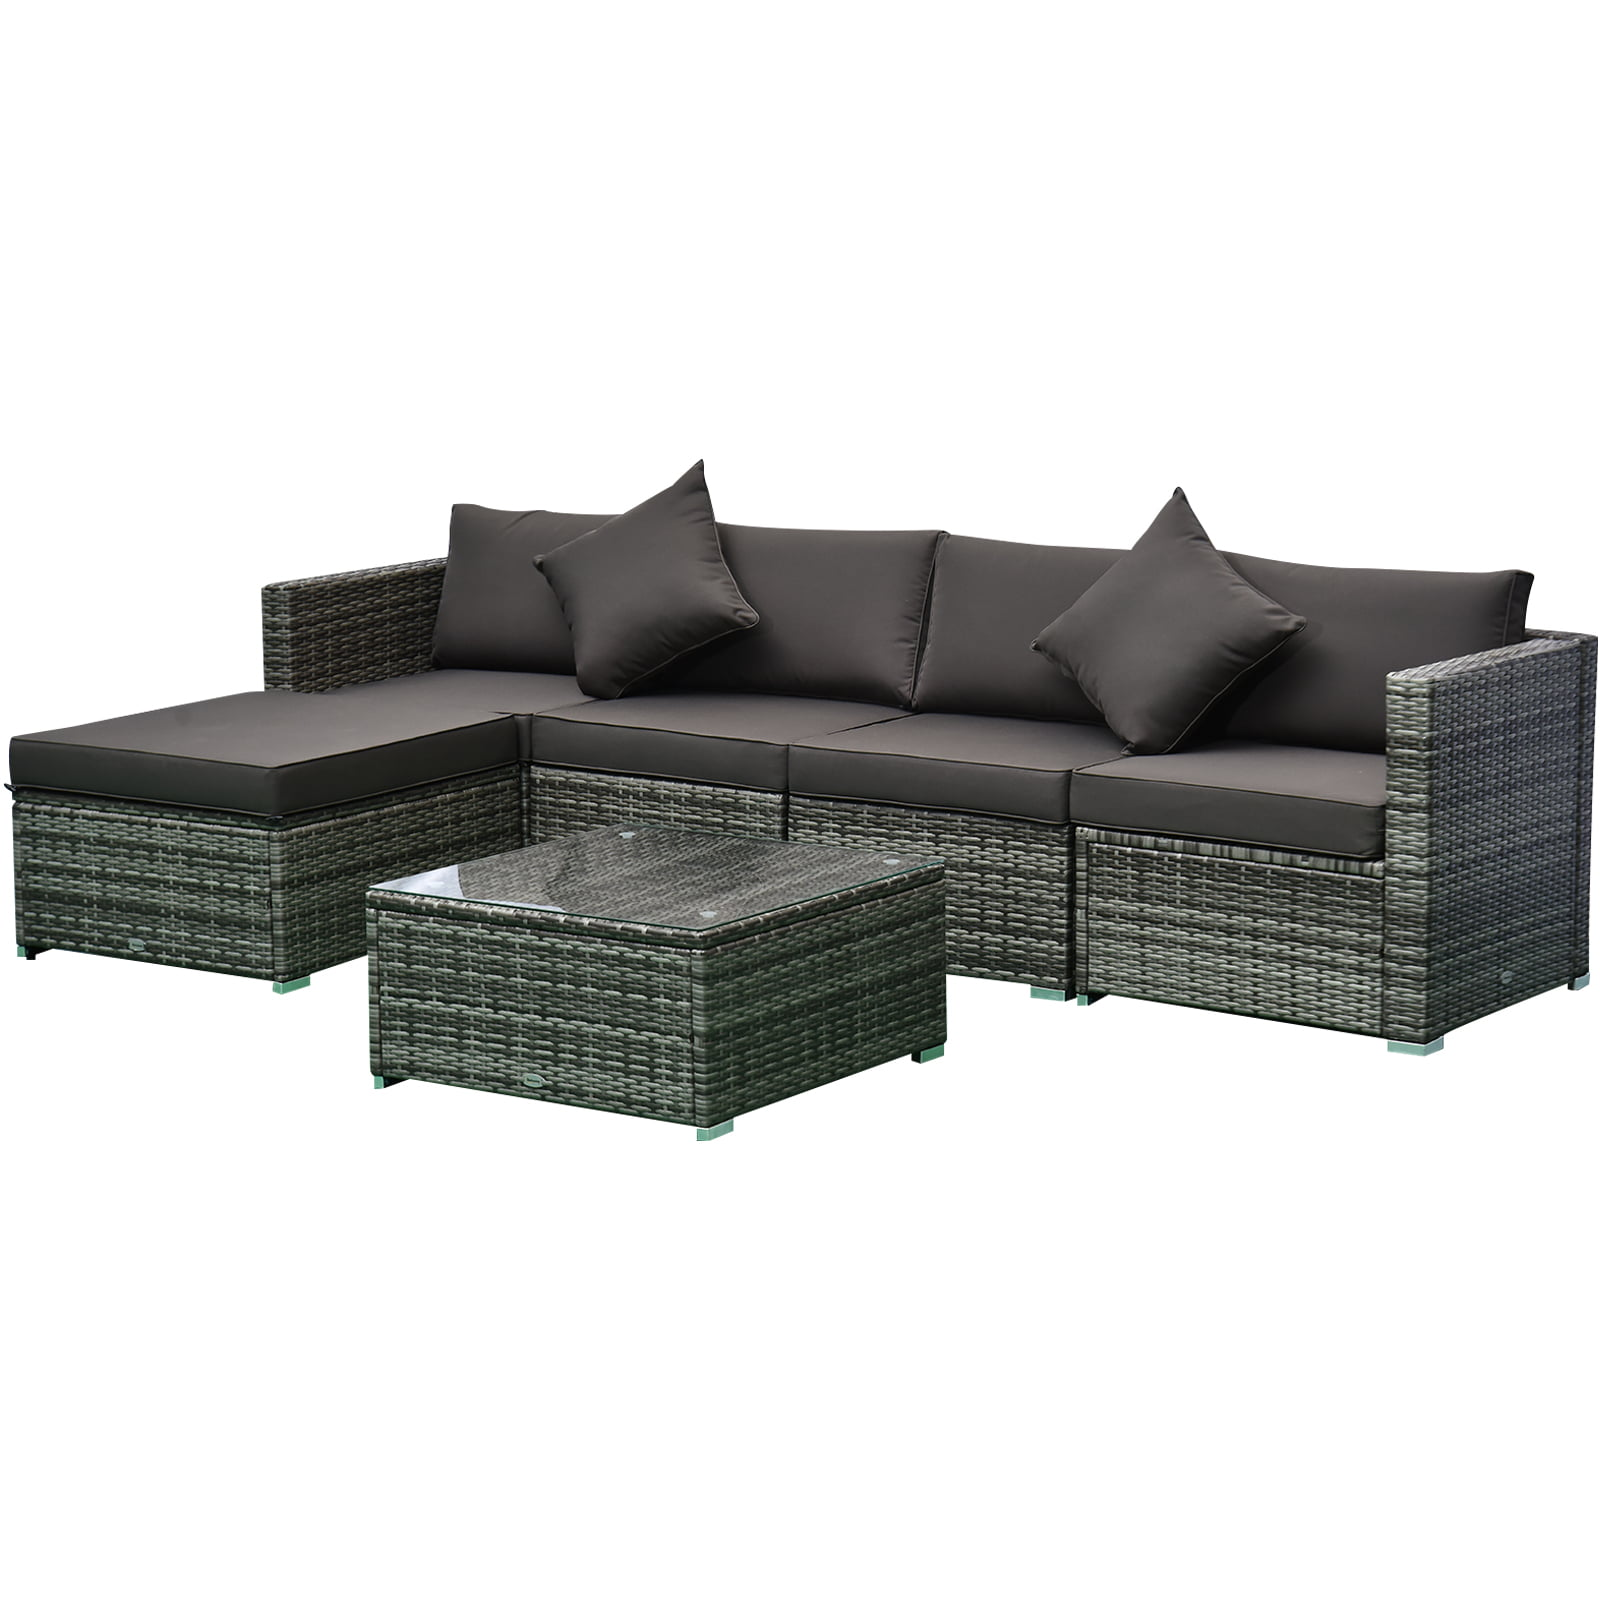 Outsunny 6-Piece Outdoor Patio Rattan Wicker Furniture Set ...